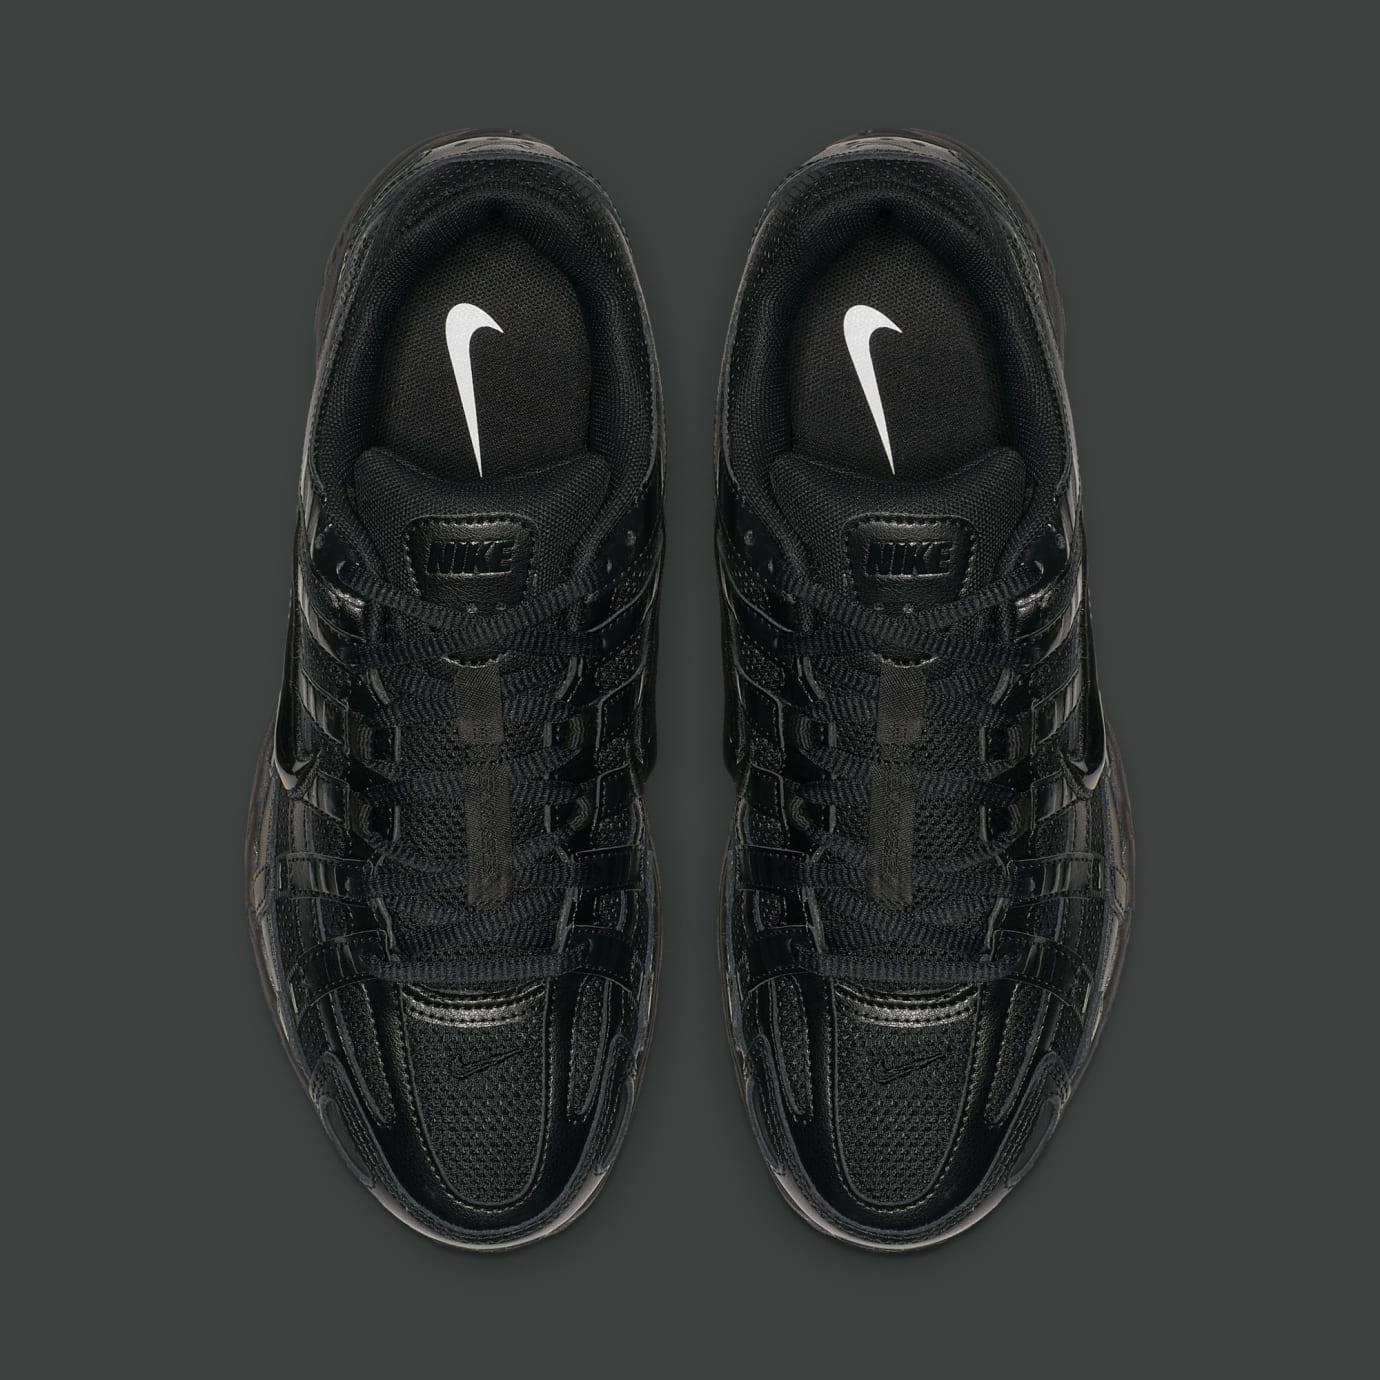 Nike P-6000 CNPT 'Black/Black' BV1021-002 (Top)